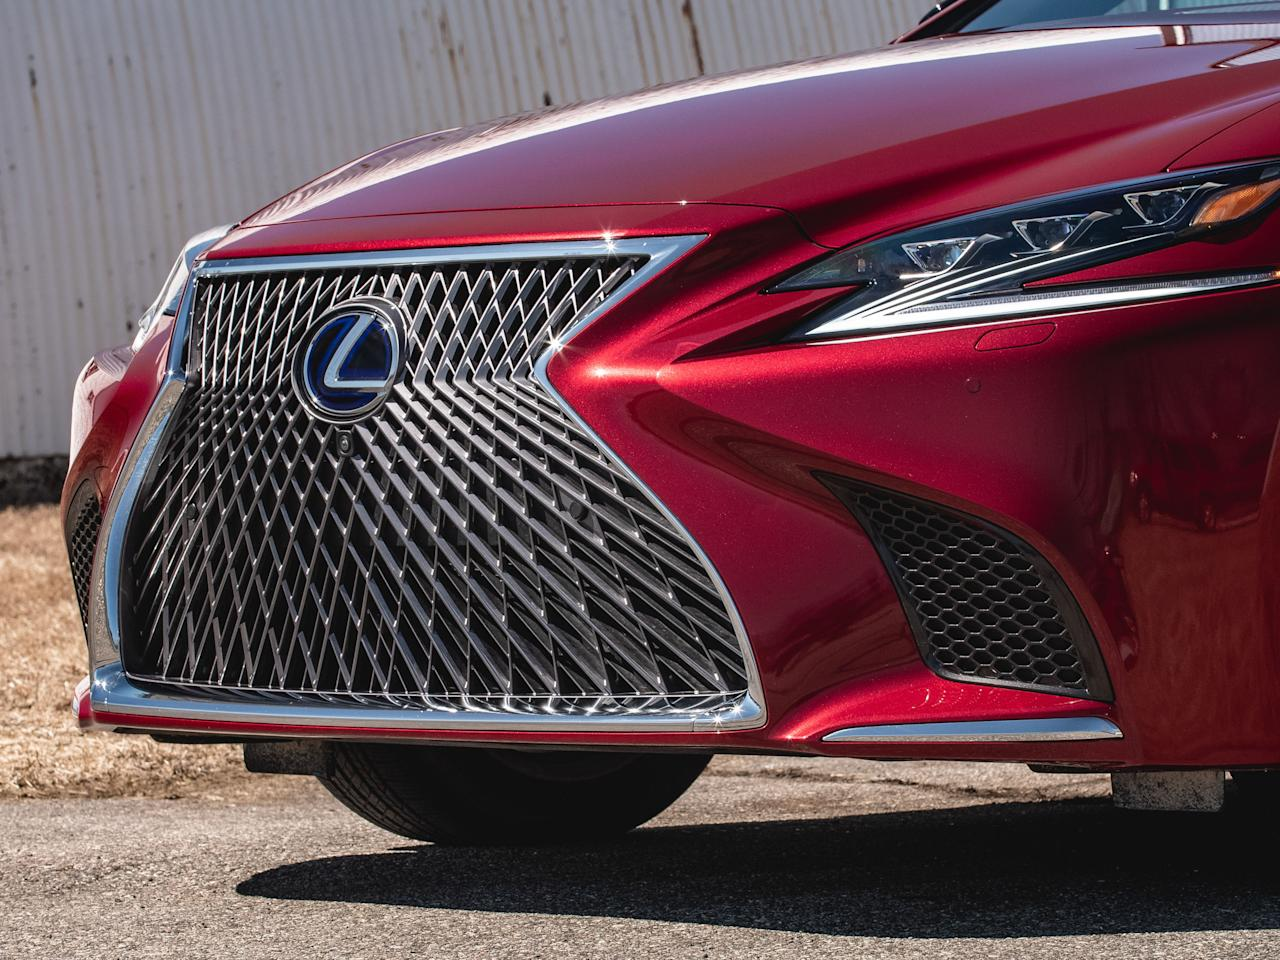 "<p>The road toward a better, more responsible automobile is often beset with potholes. Some attempts at improvement, though technologically remarkable, are pragmatically self-defeating. We're not saying <a href=""https://www.caranddriver.com/lexus/ls"" target=""_blank"">the 2019 Lexus LS500h</a> is that car, but its purpose and its virtues aren't always clear.</p>"